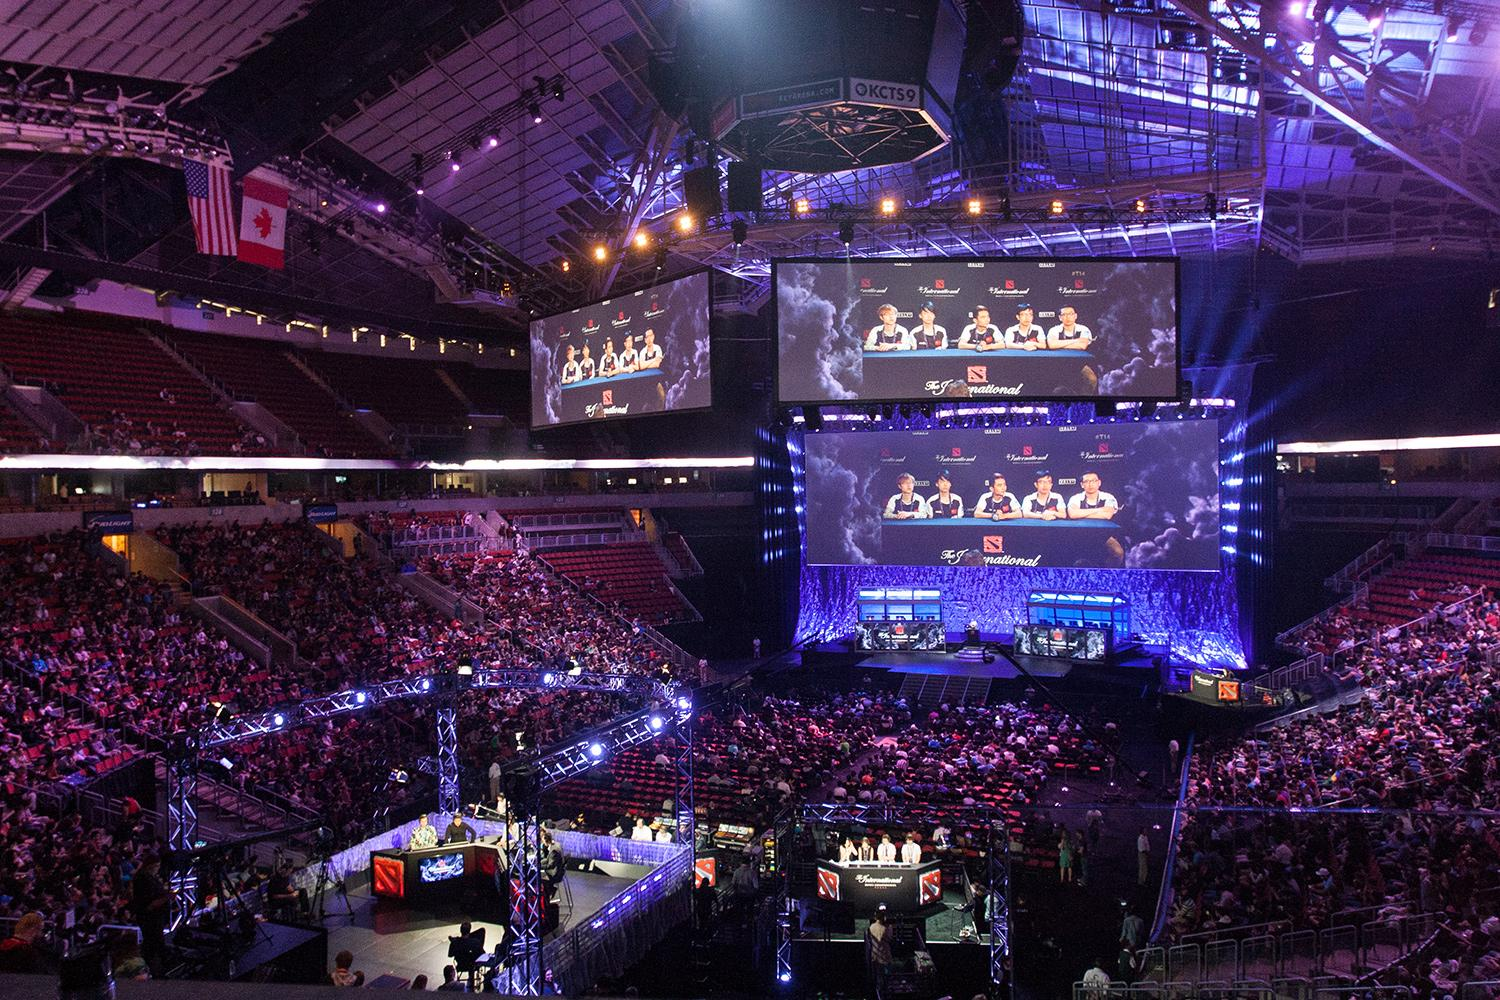 valve s 18 million dota 2 tournament the international 5 delayed